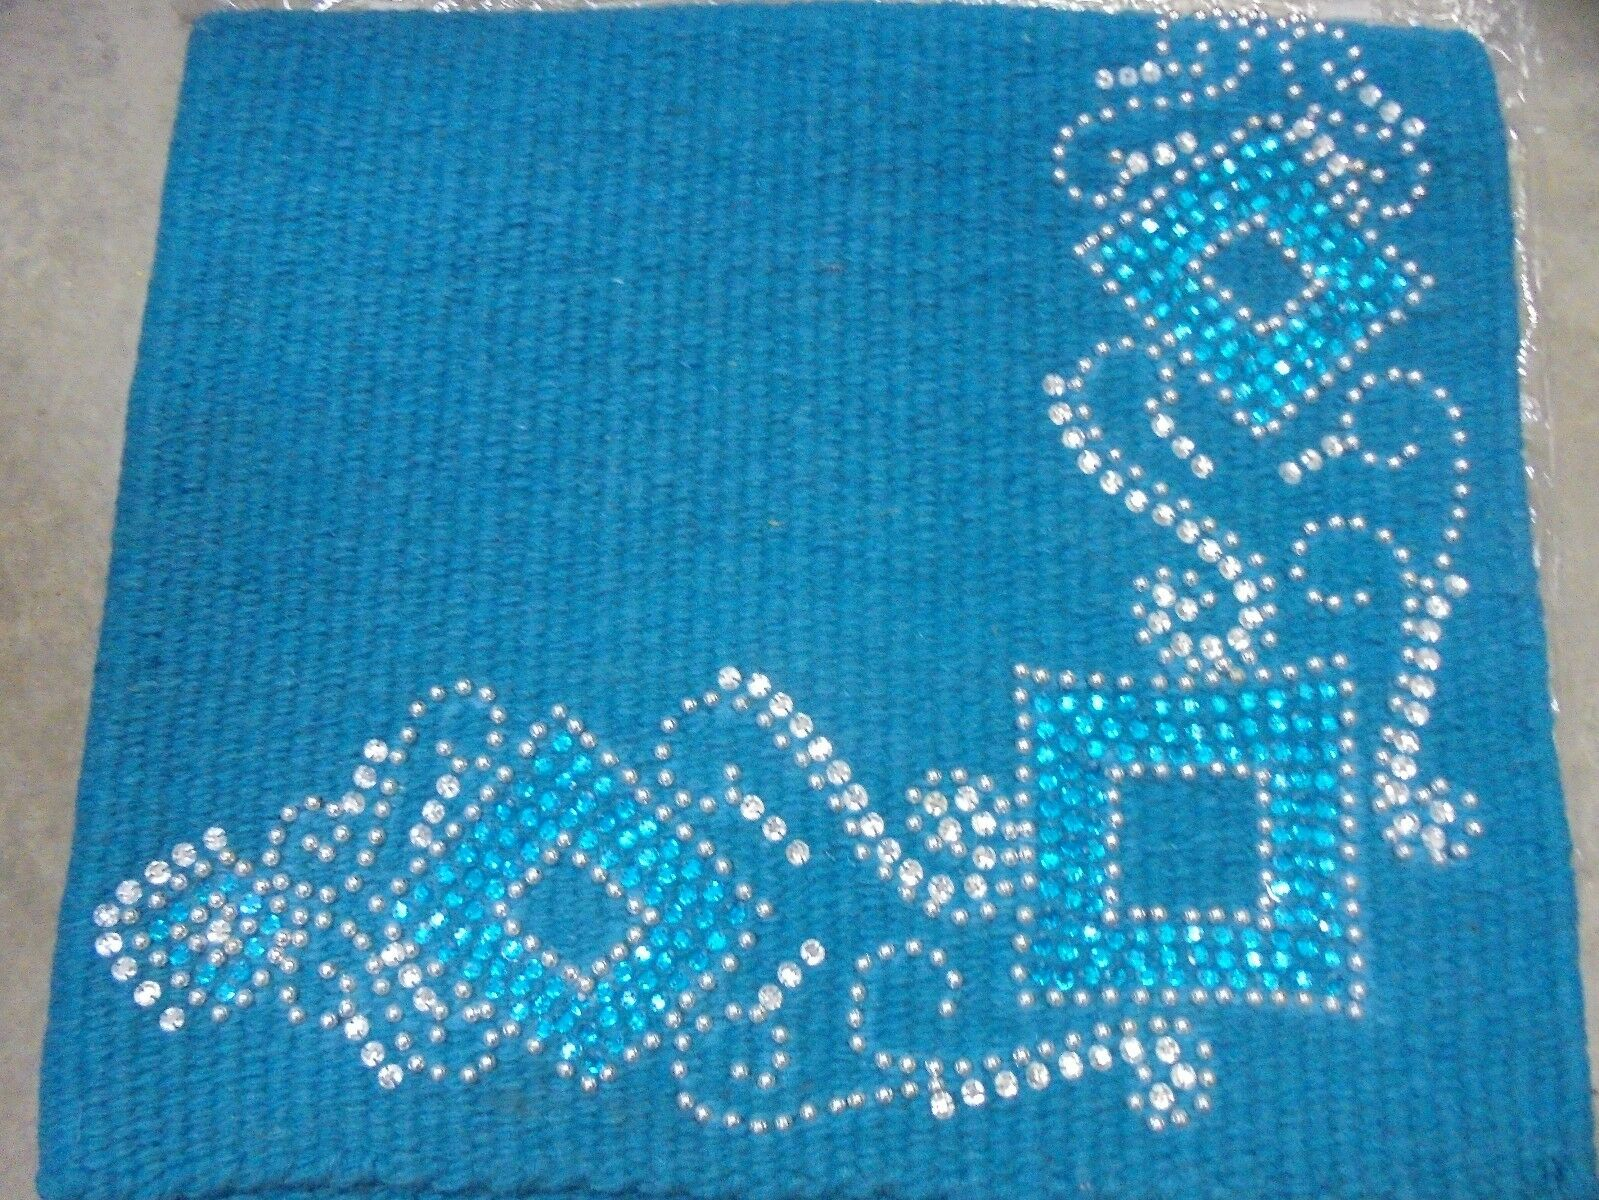 Tough-1 -  Wool  Saddle Blanket - TURQUOISE w  Crystal Dots - 38X34 -NEW